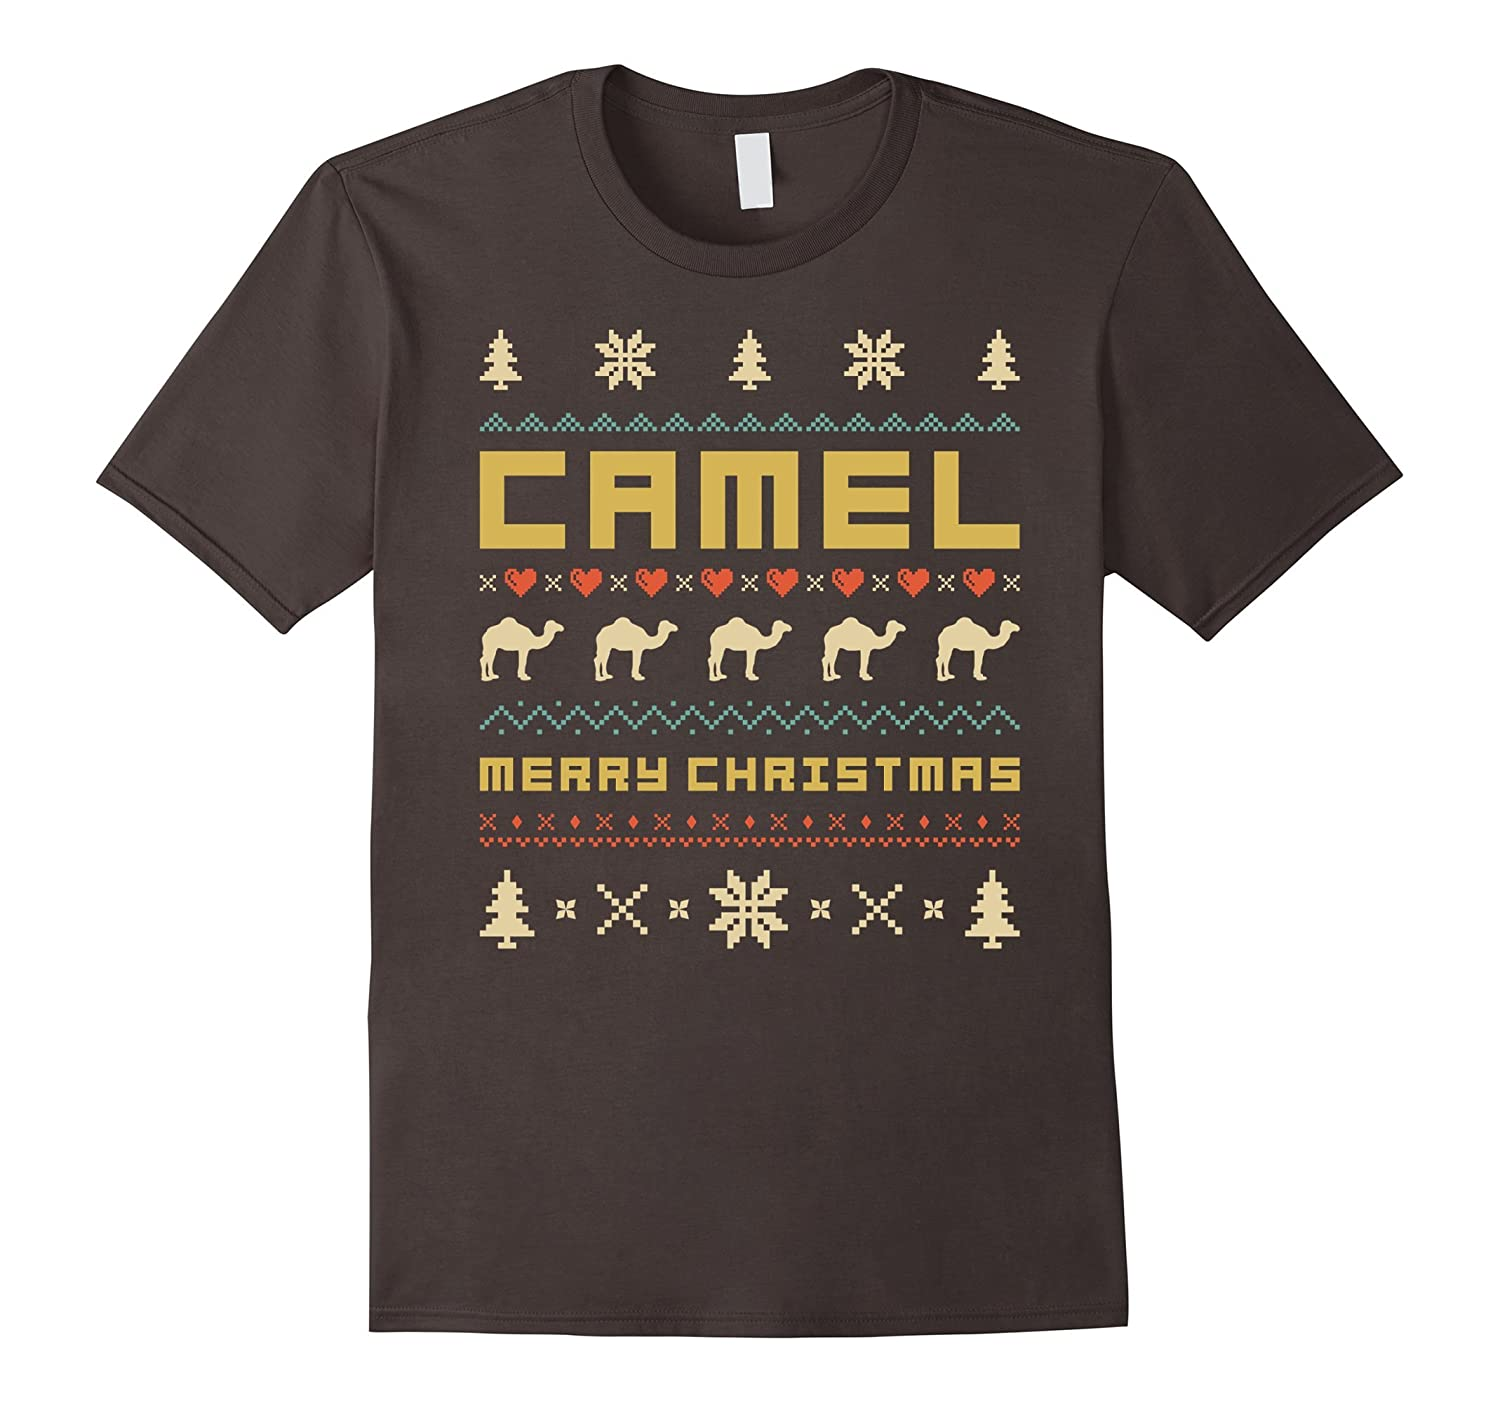 camel ugly christmas sweater t shirt vintage retro style anz - Vintage Christmas Sweater